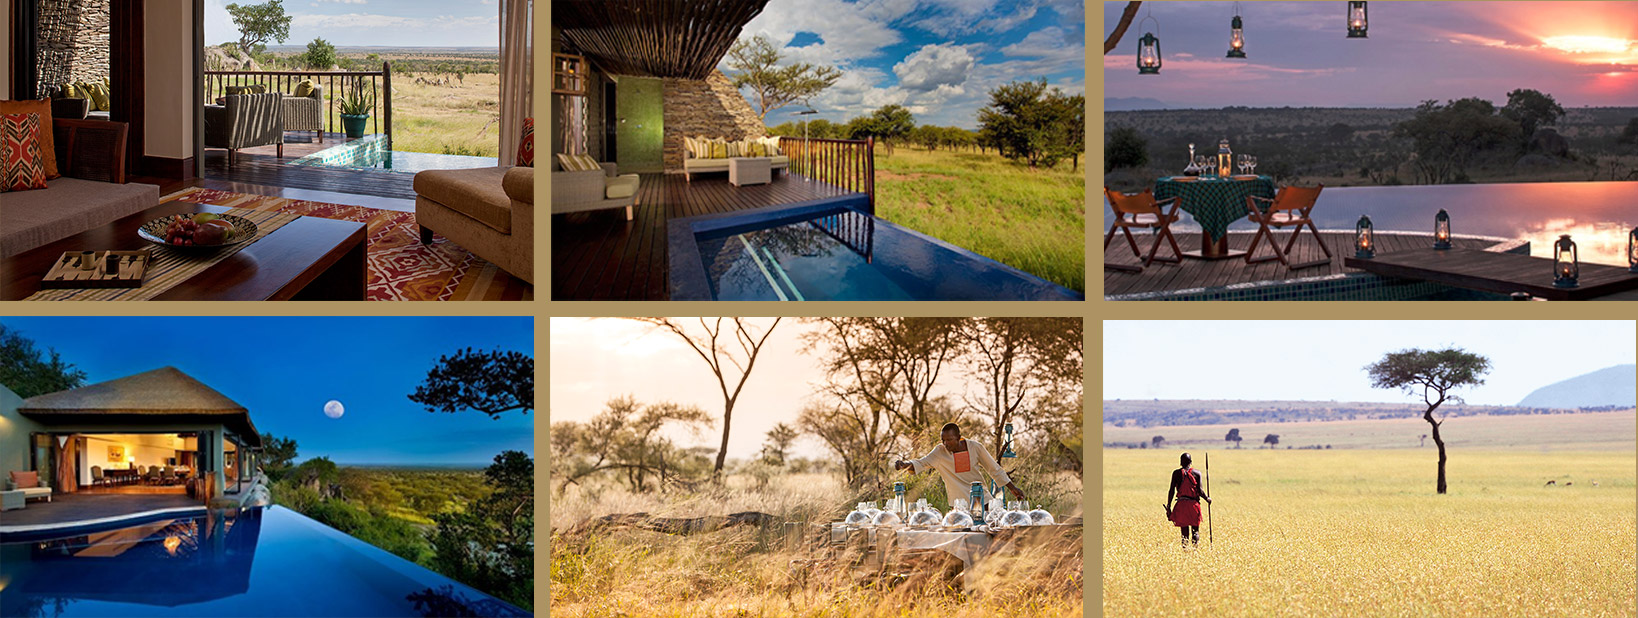 Tanzania by Nuba y Four Seasons